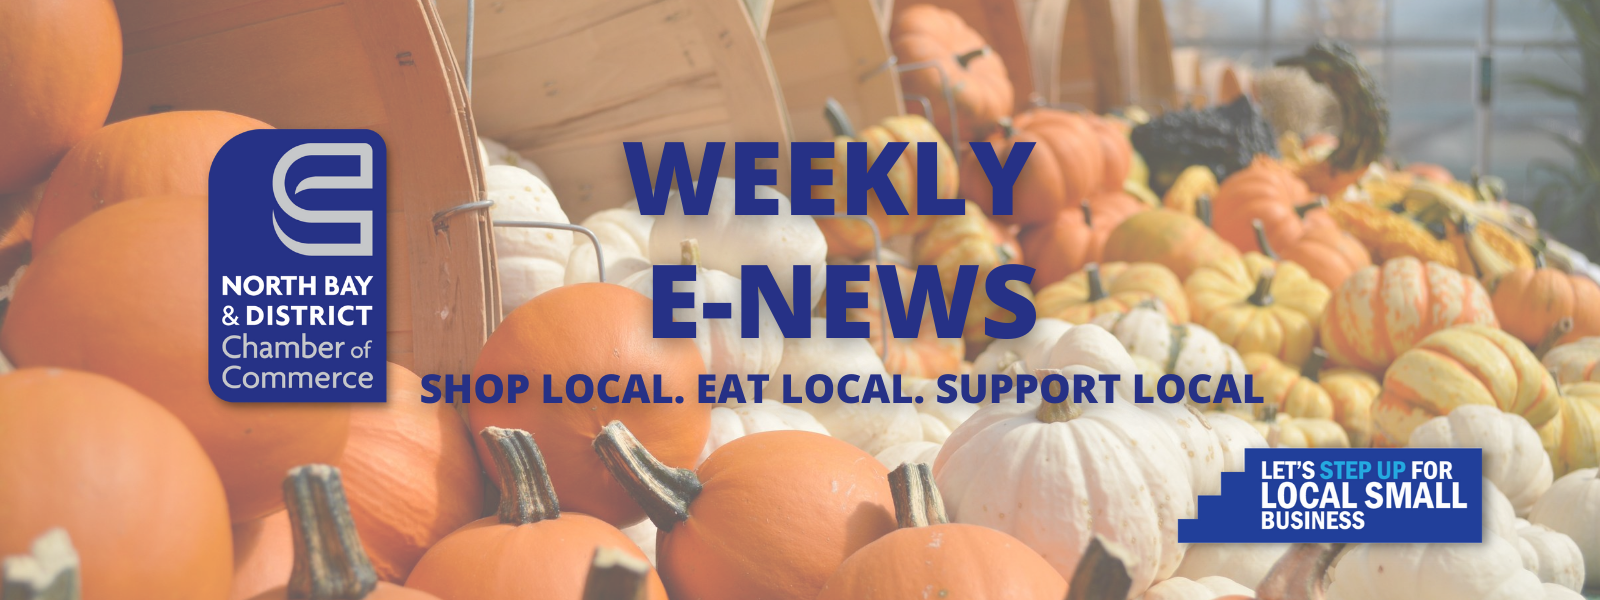 Weekly E-News Pumpking Images